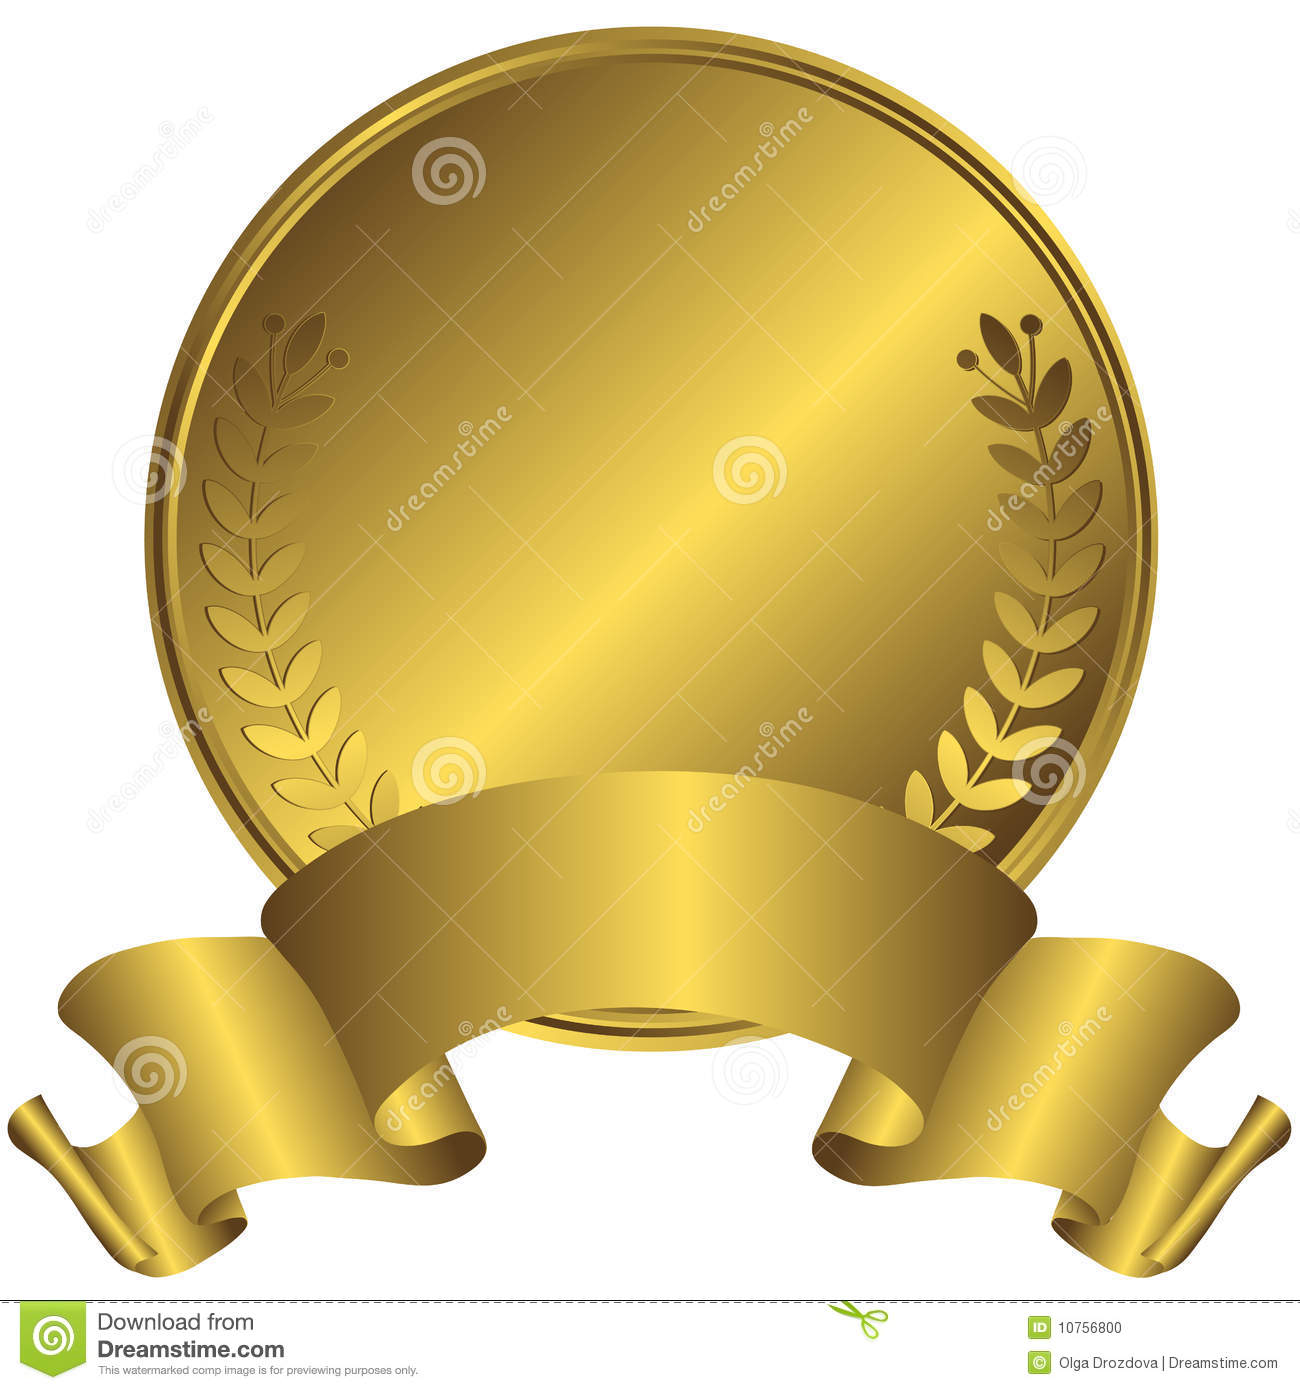 Foto De Stock Trof C3 A9u Da Concess C3 A3o Do Ouro Image10209020 additionally Kids Award Charts moreover Sports cartoon in addition Gold Trophy Element 536792 moreover OurAwards. on trophy award clip art